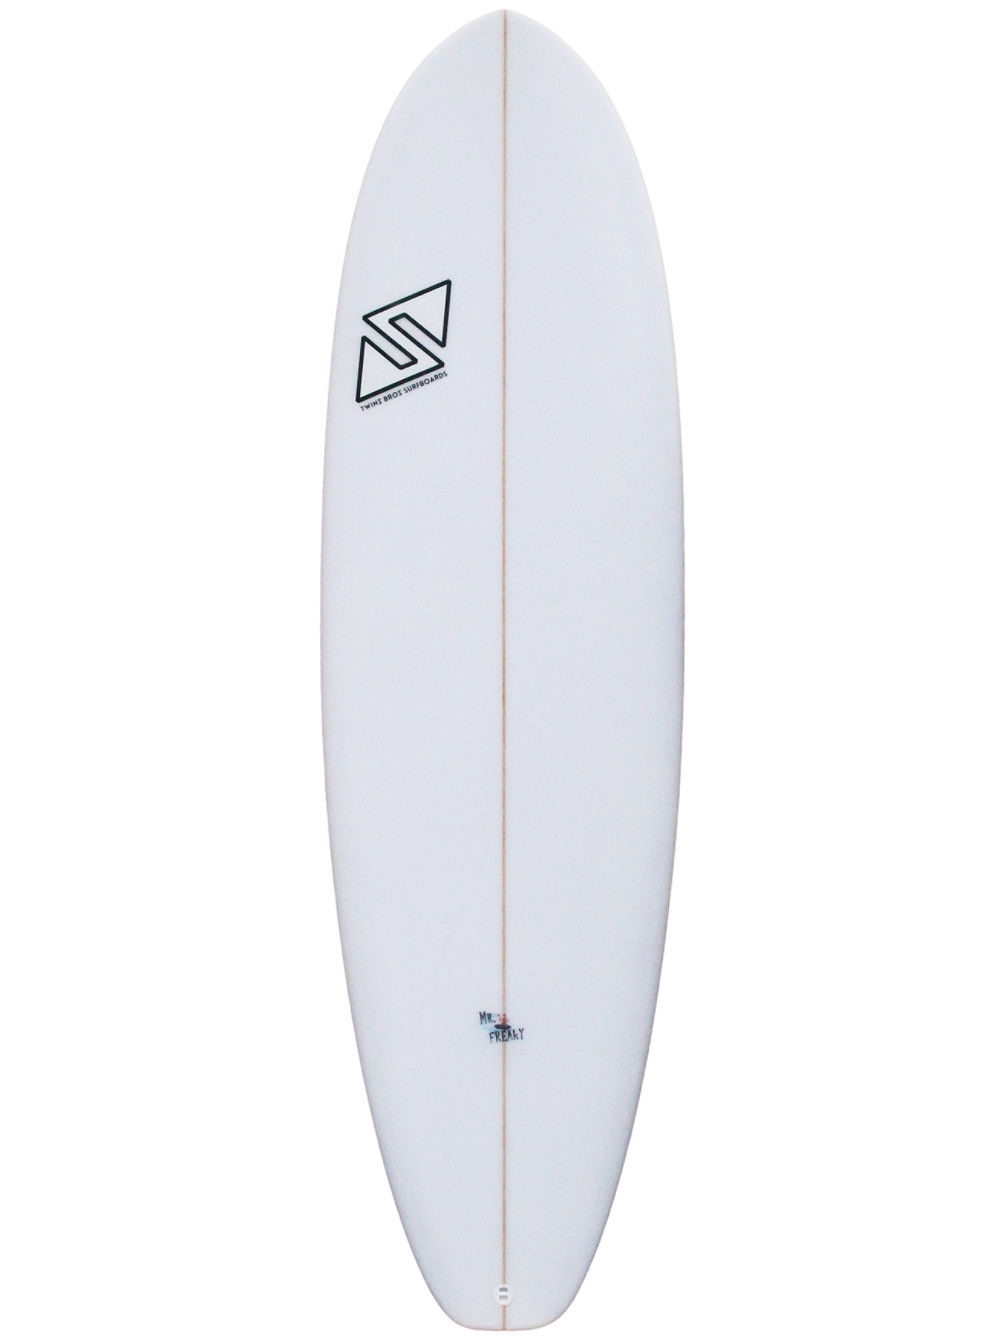 Mr'Freaky FCS2 5'6 Tabla de Surf